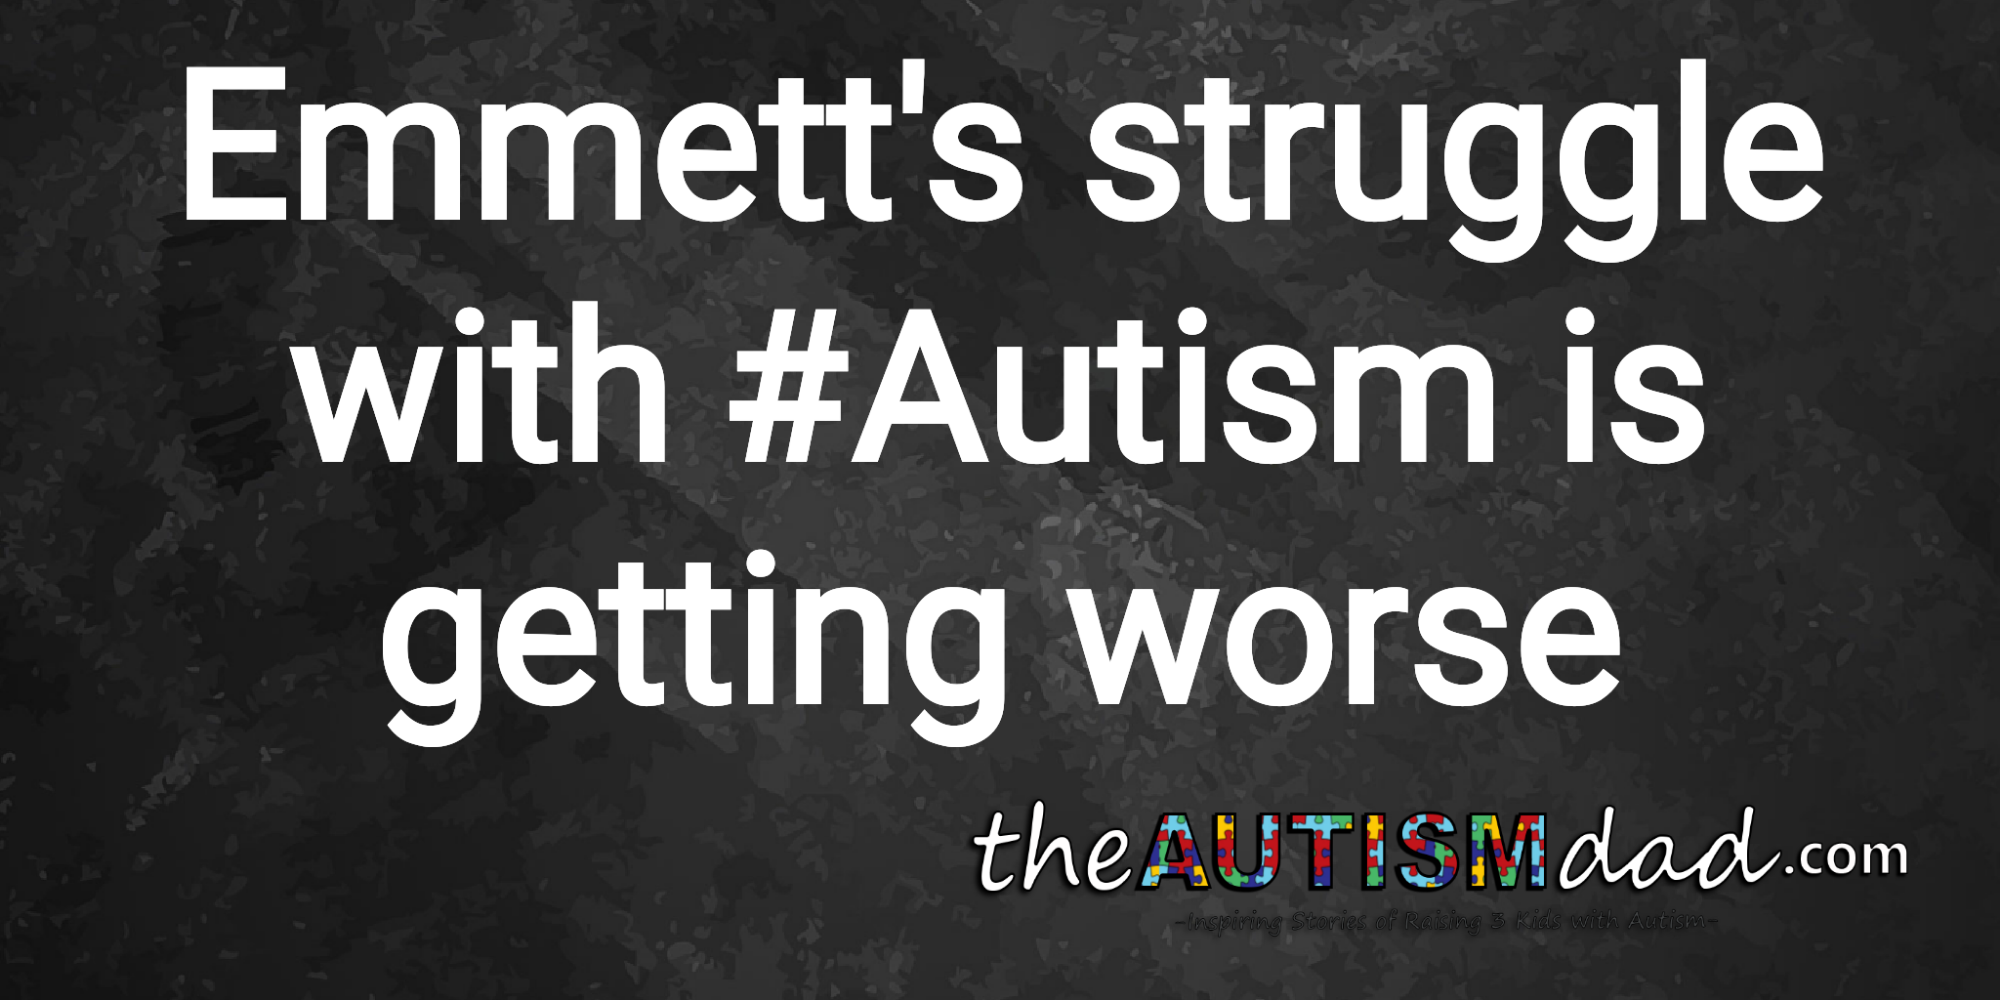 Emmett's struggle with #Autism is getting worse